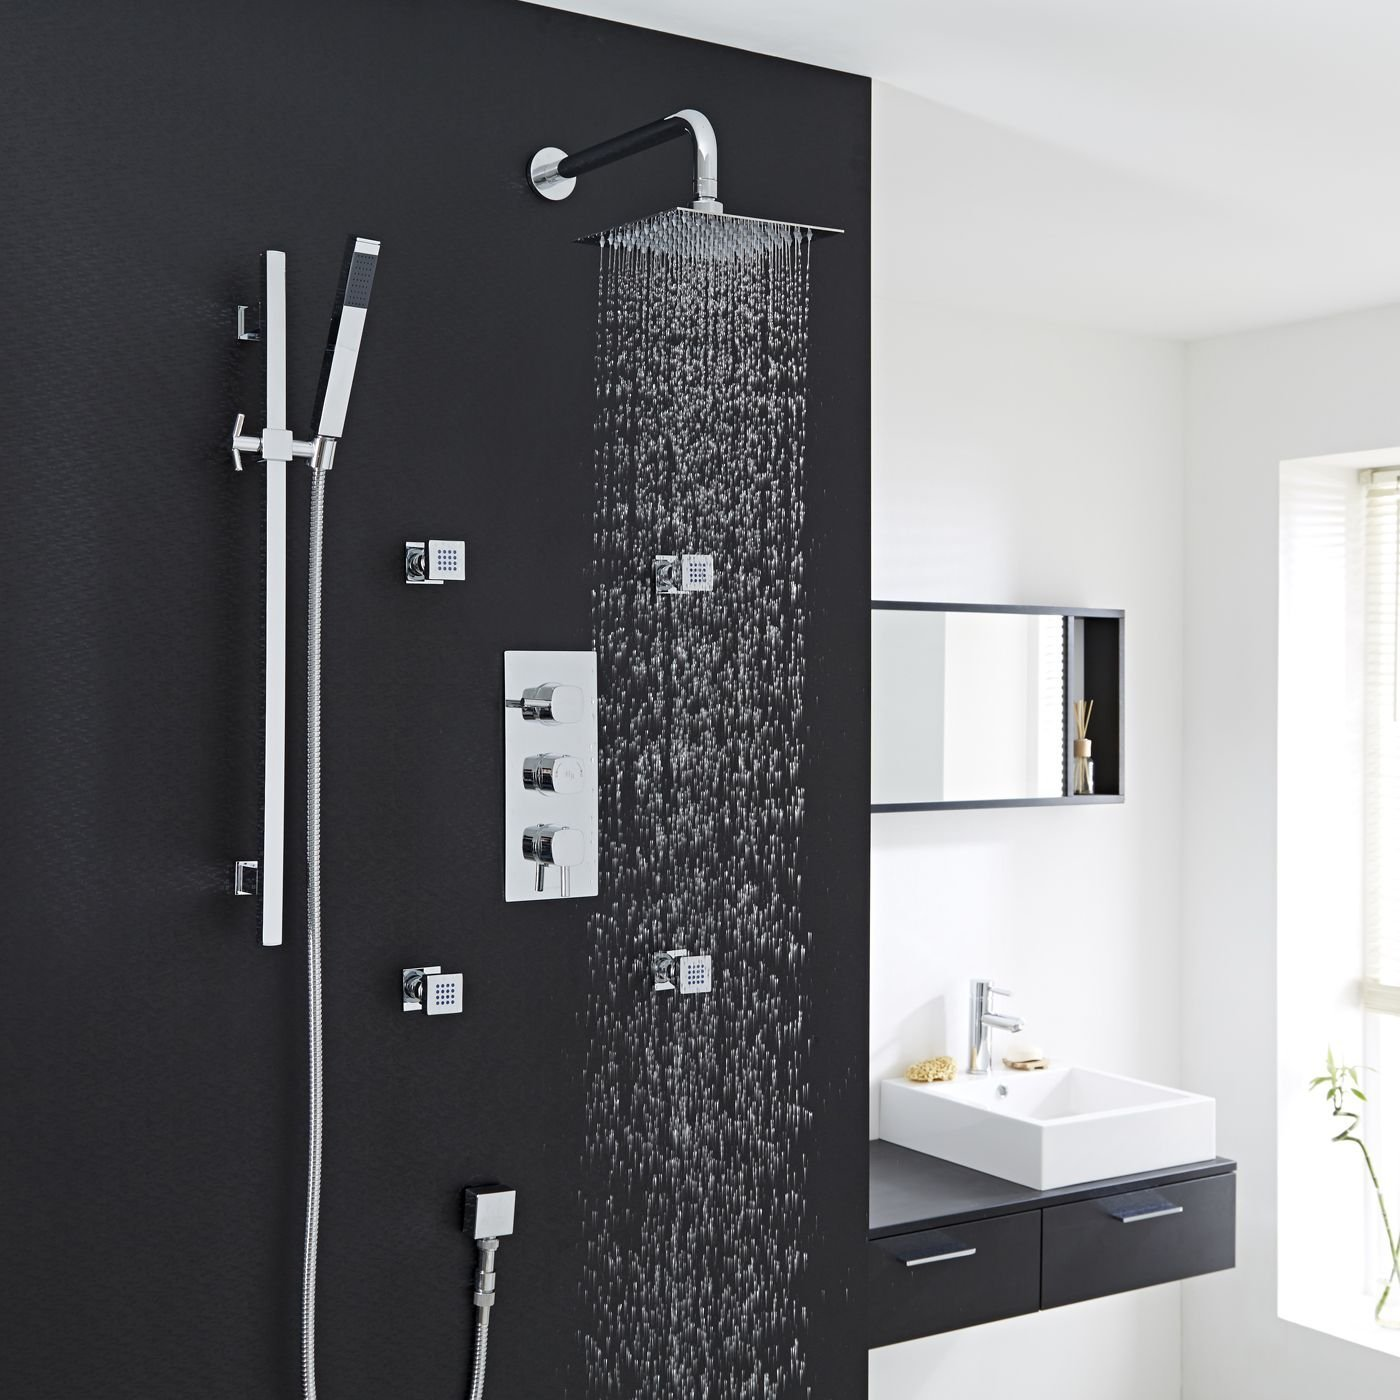 """La Plata 8"""" Square Rainfall Head Three Outlet Thermostatic Shower System Set With 4 Adjustable Body Jet Sprayers In Chrome Finish"""